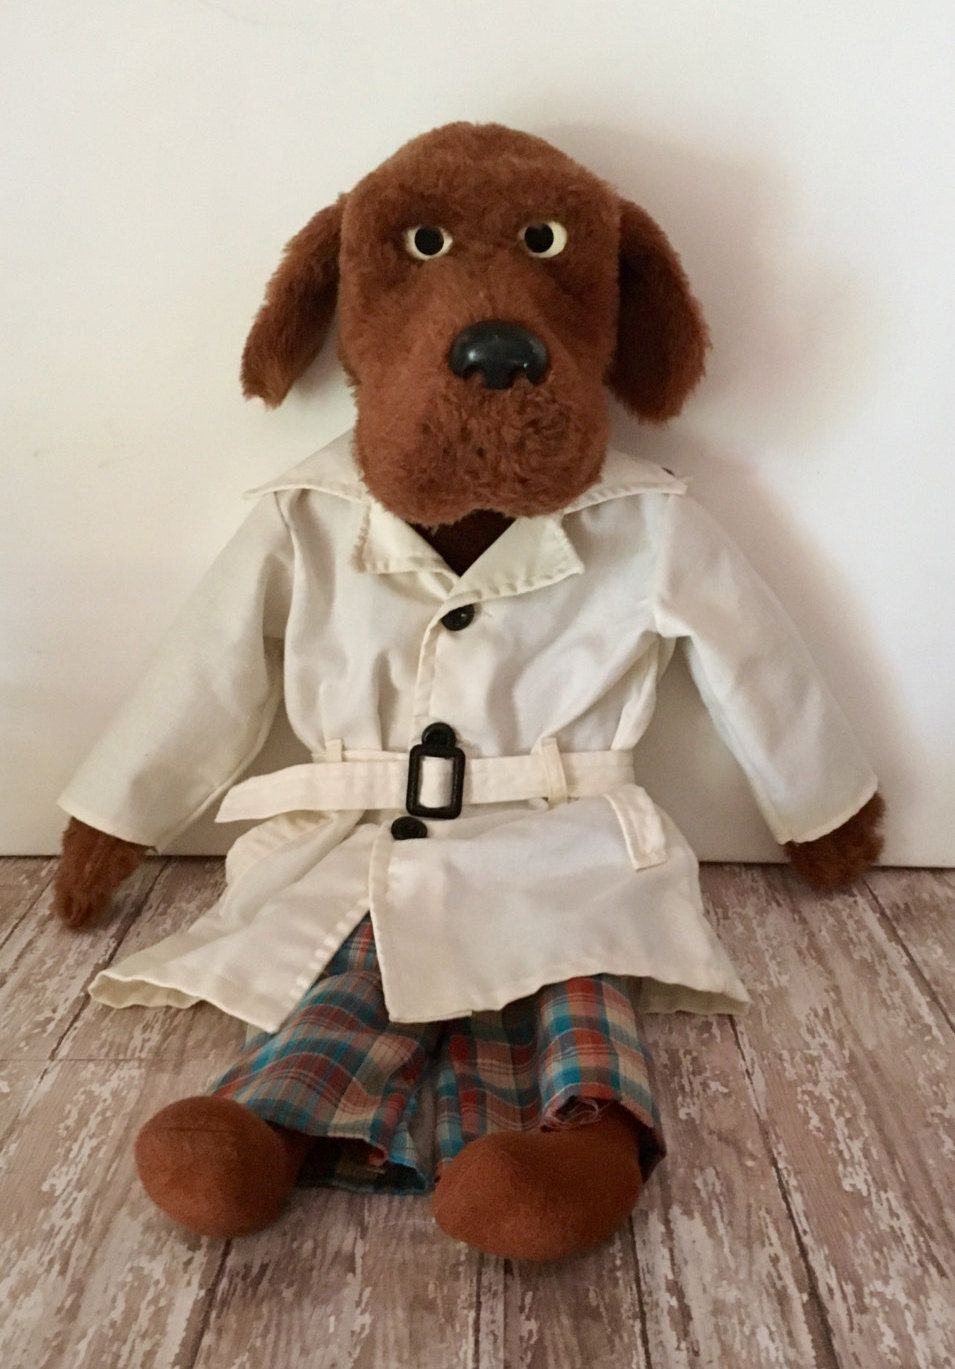 Vintage Mcgruff The Crime Dog Ventriloquist Puppet 1980 S Etsy Hand Puppets Crime Puppets